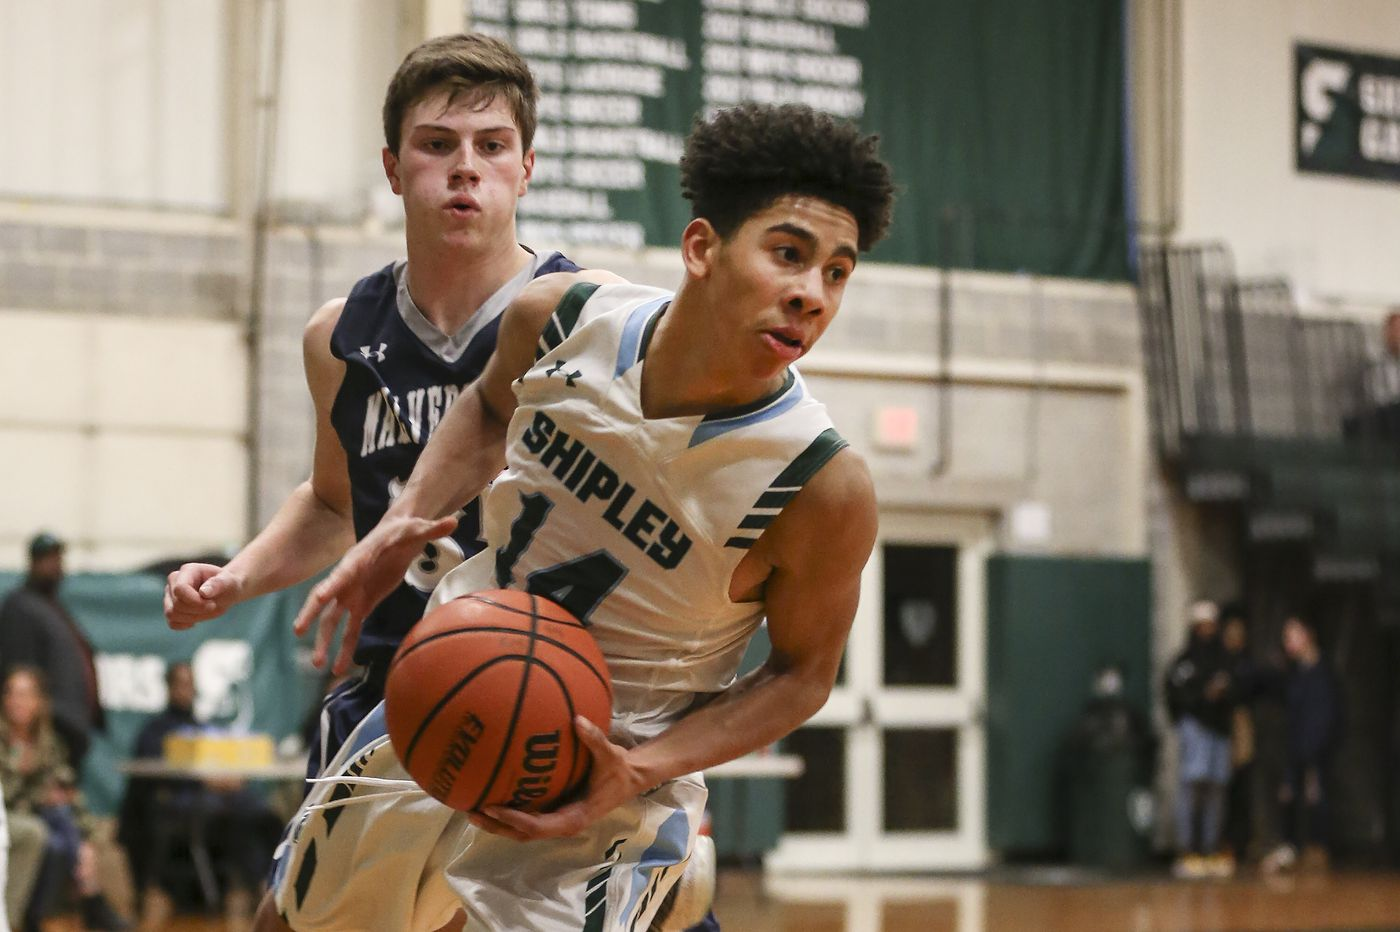 Khai Champion, new-look Shipley stay perfect with victory over undermanned Malvern Prep